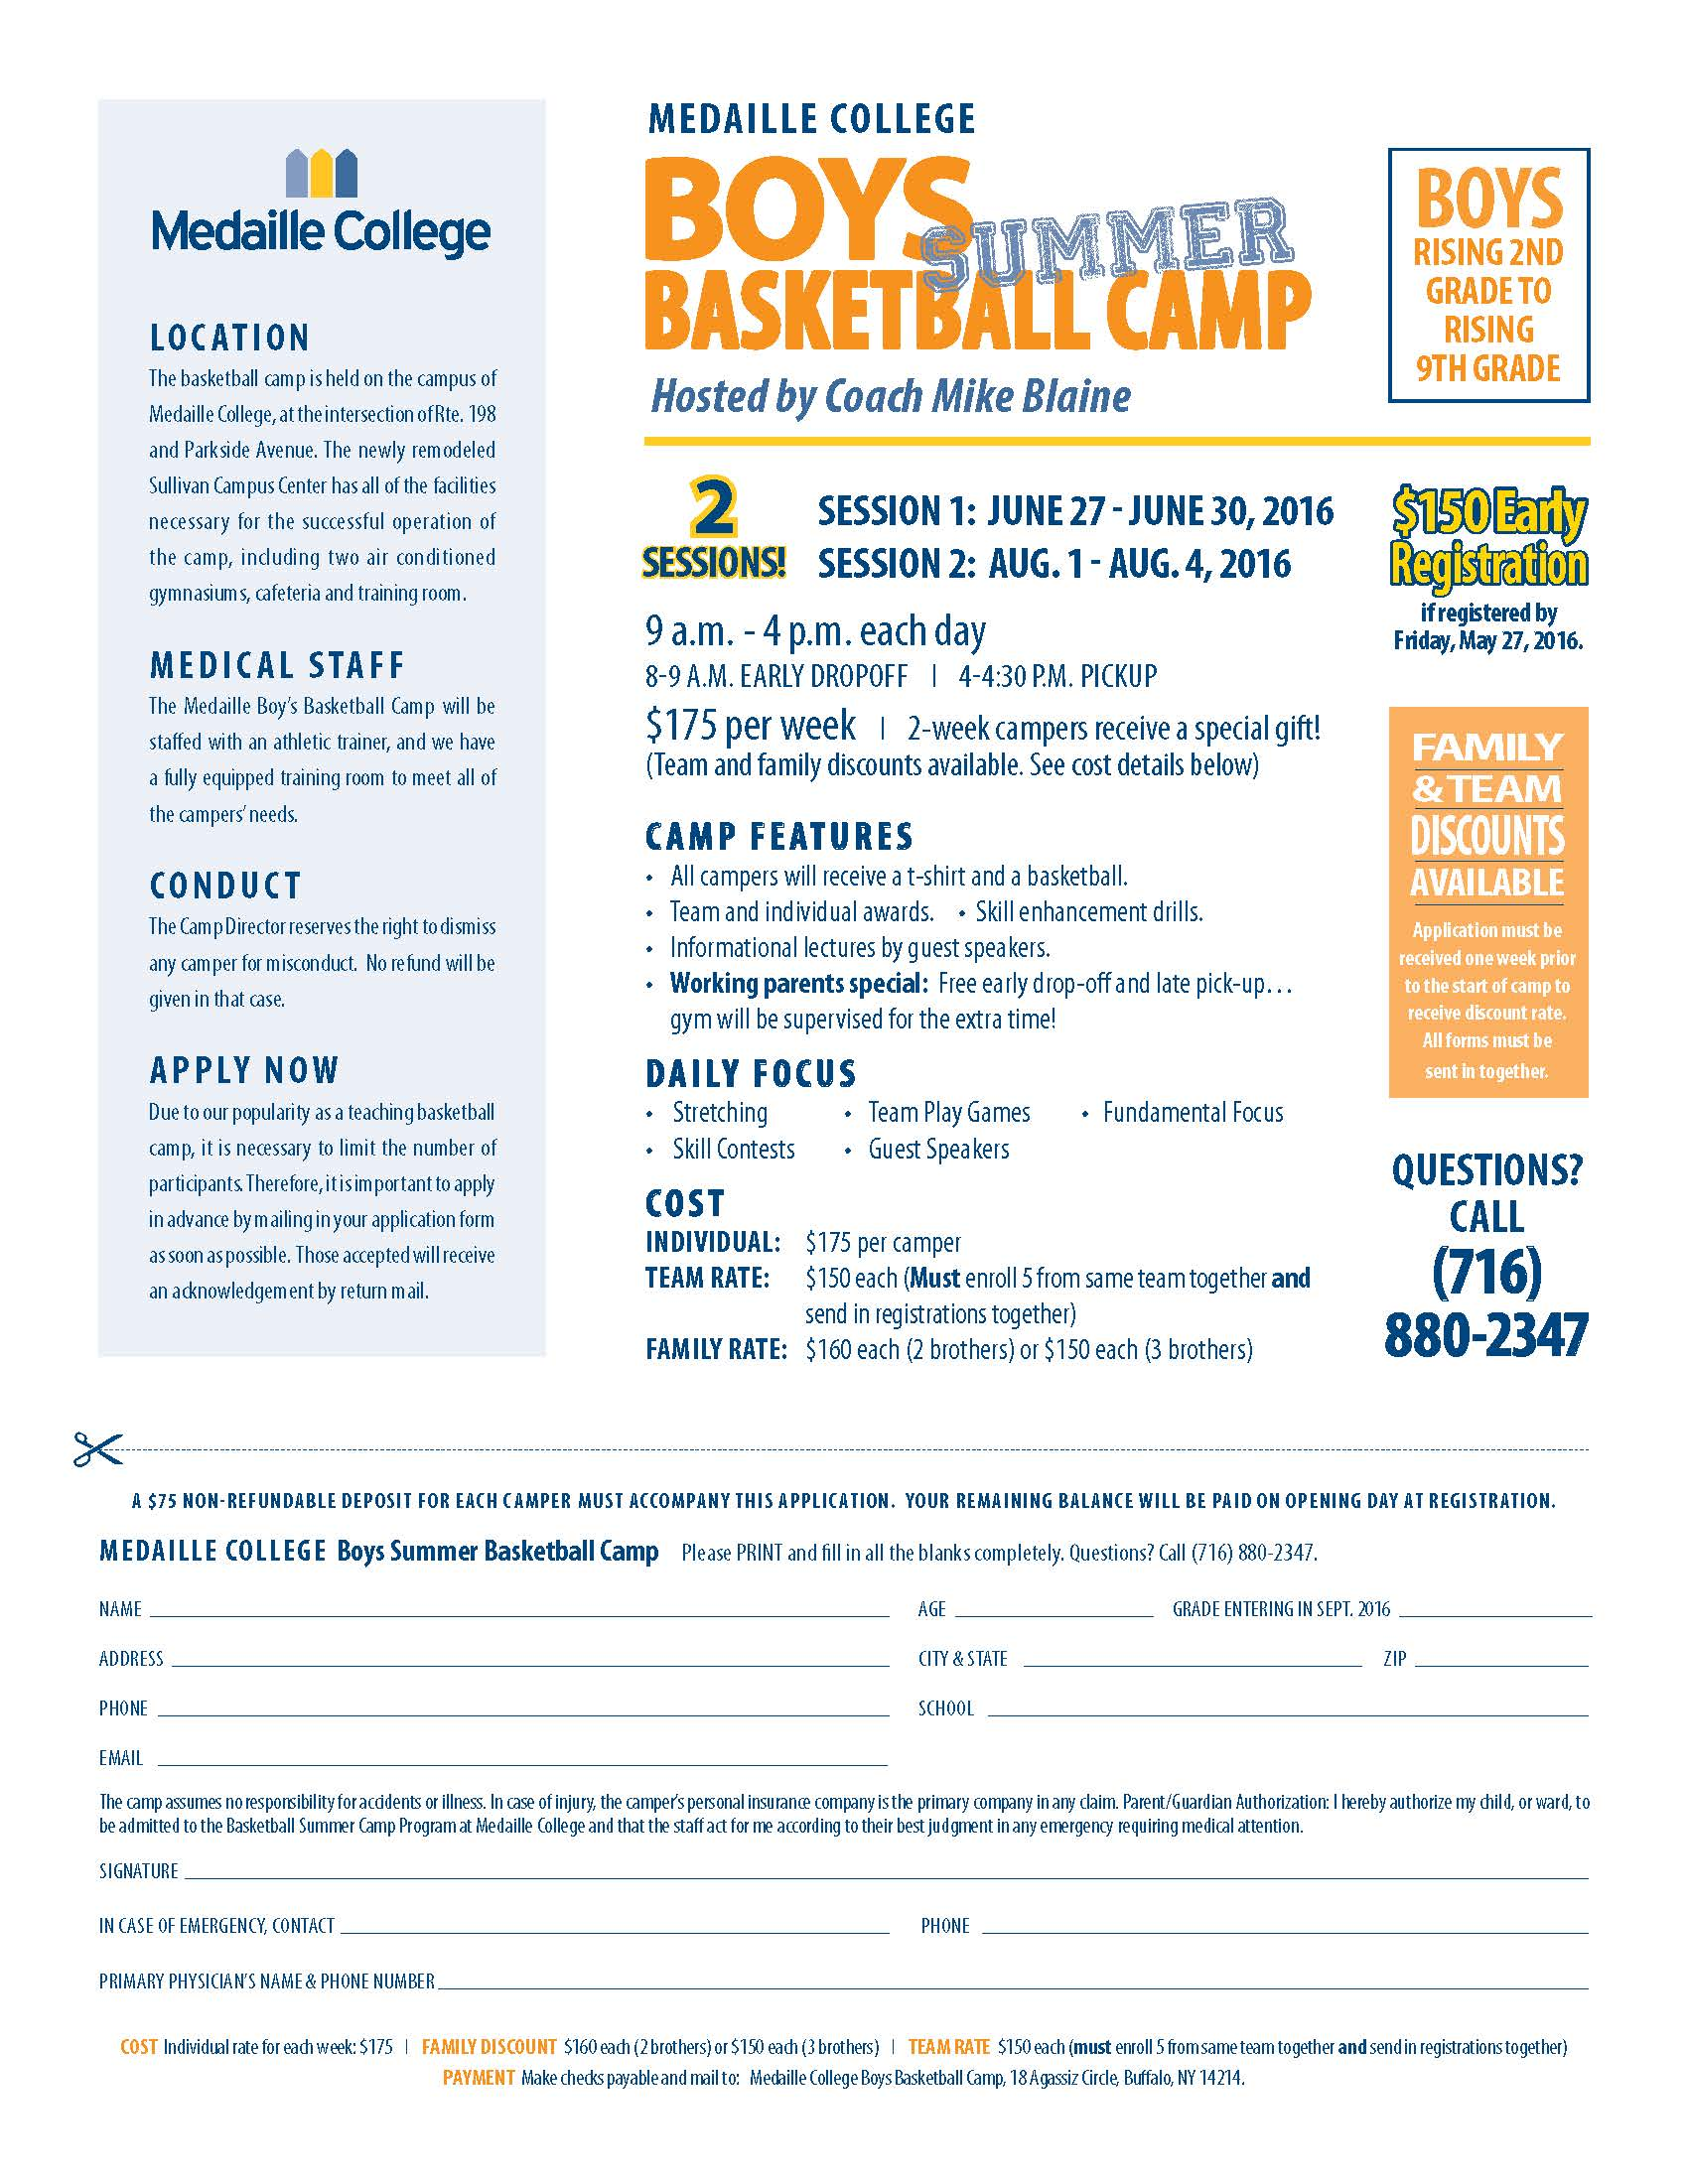 2016 Medaille Boys Basketball Camp Brochure_Page_2